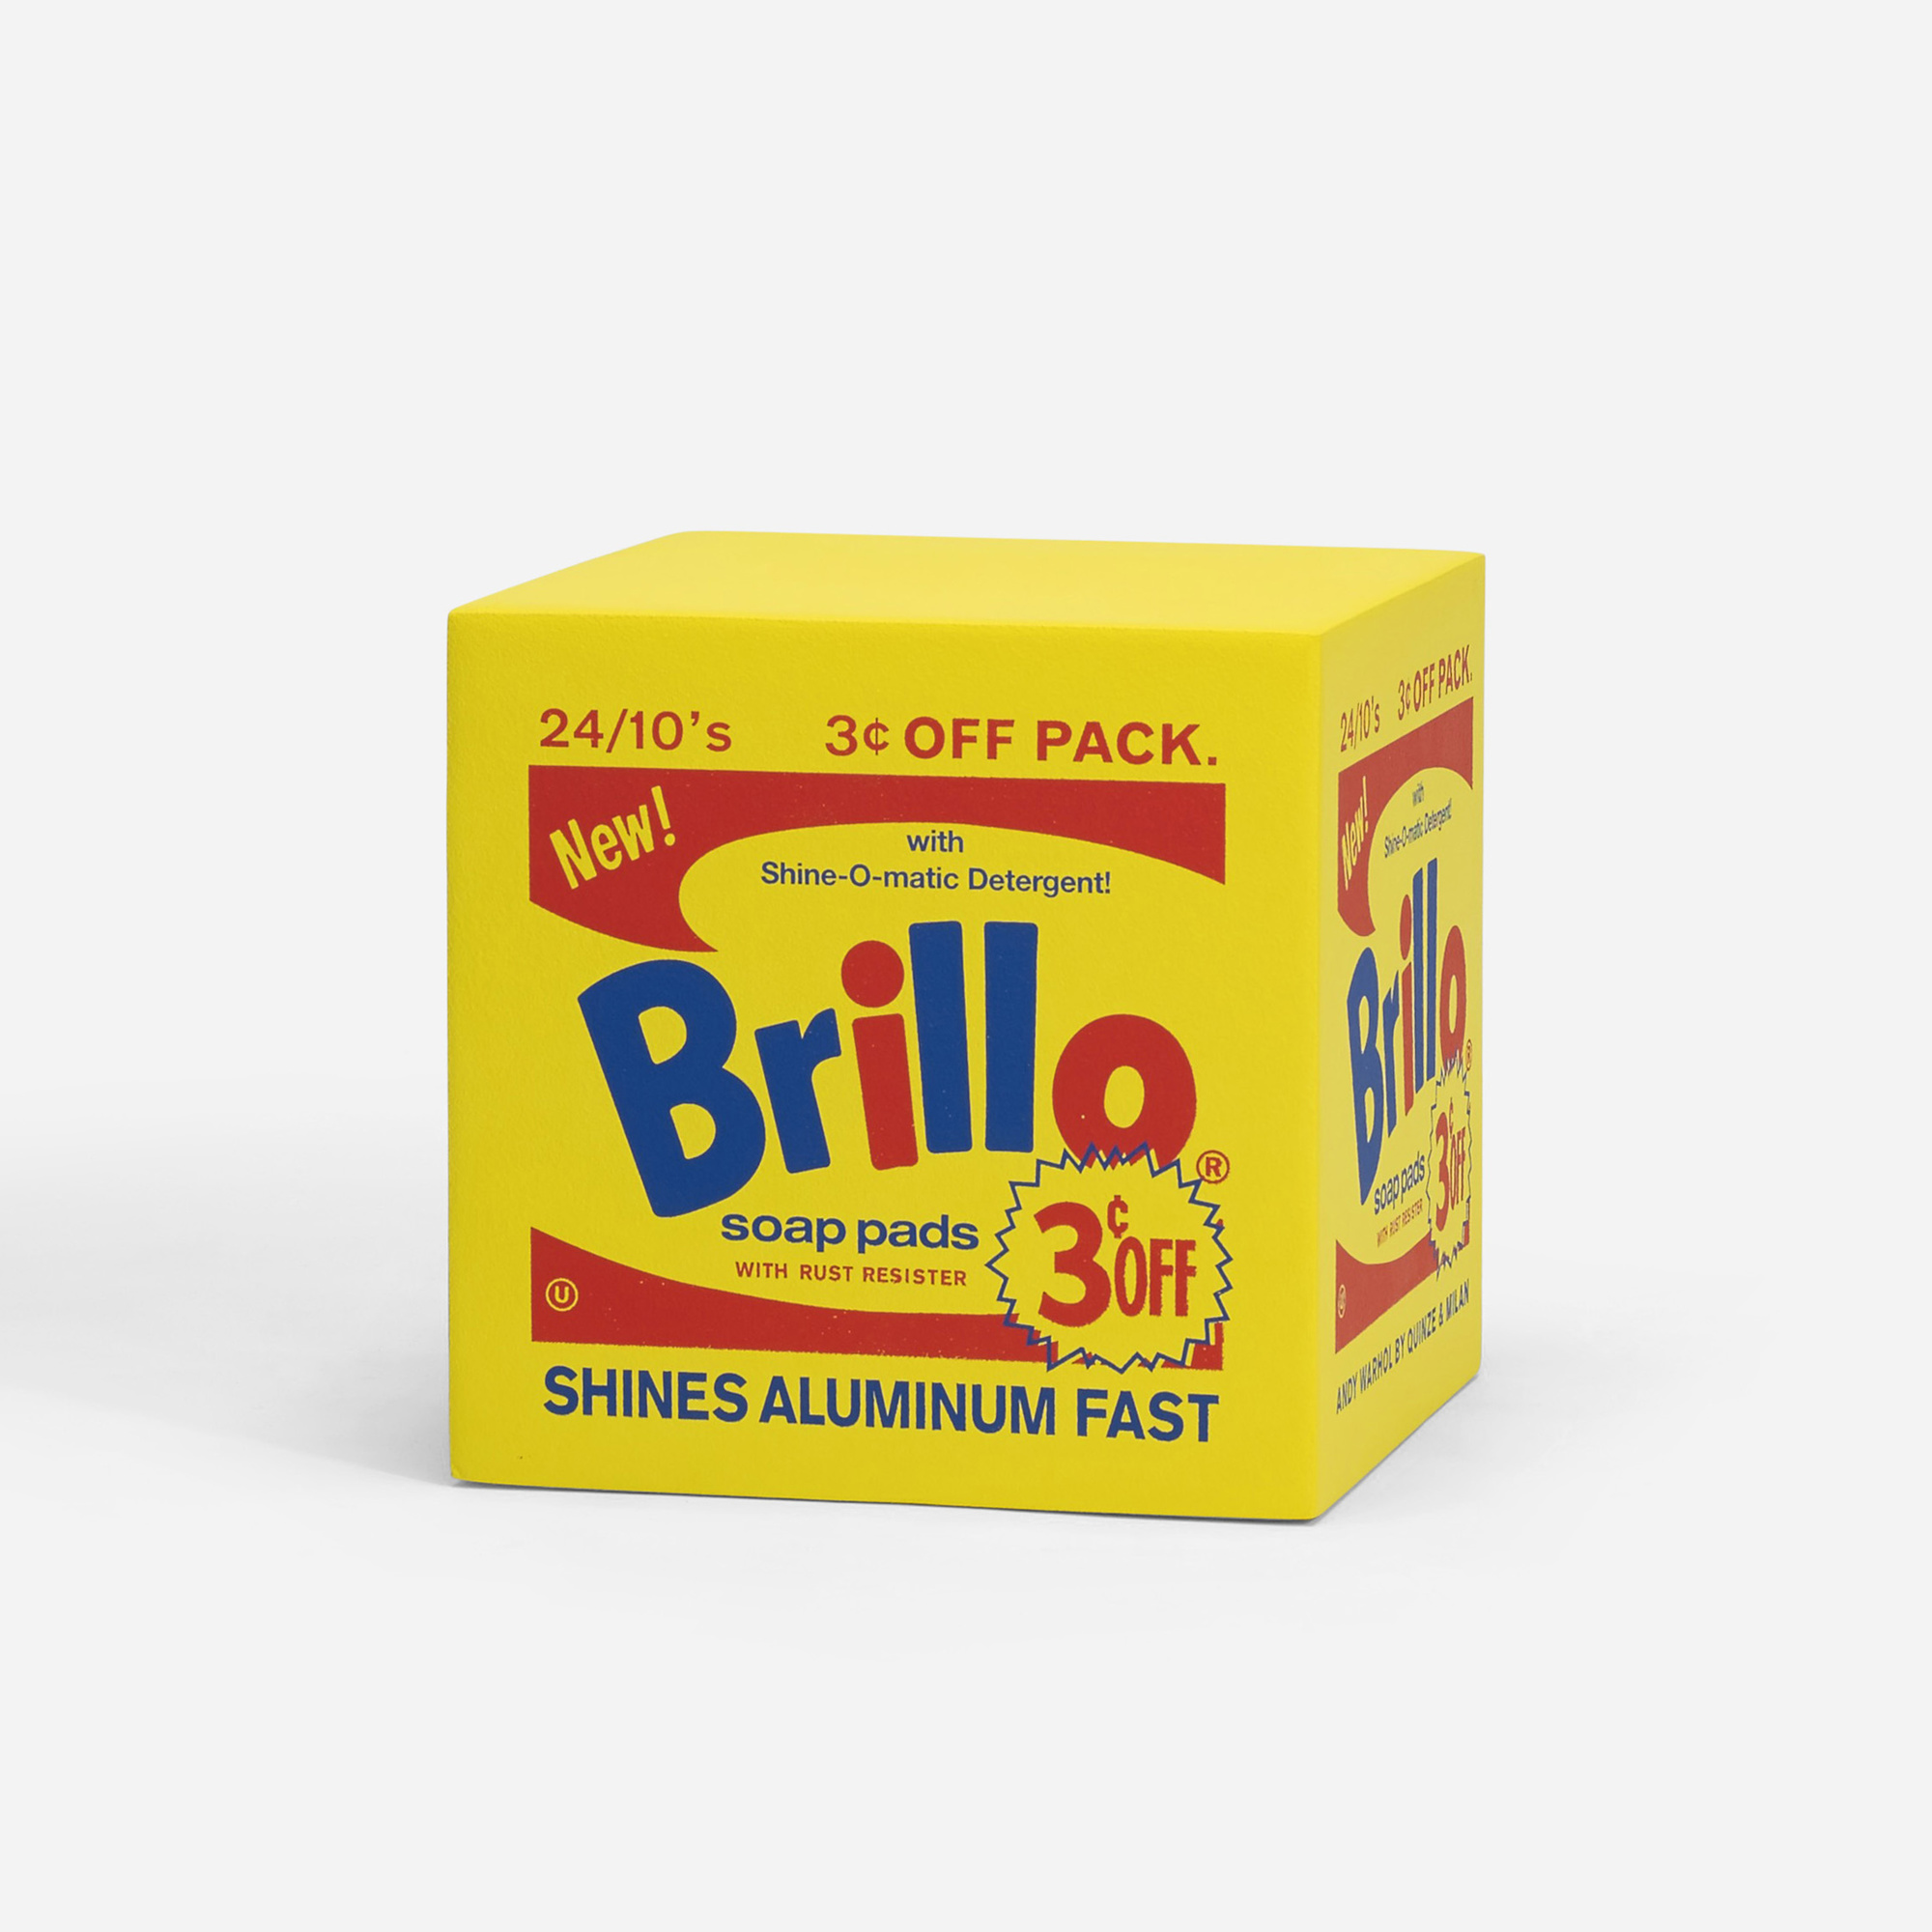 782: Andy Warhol / Brillo pouf yellow (1 of 2)